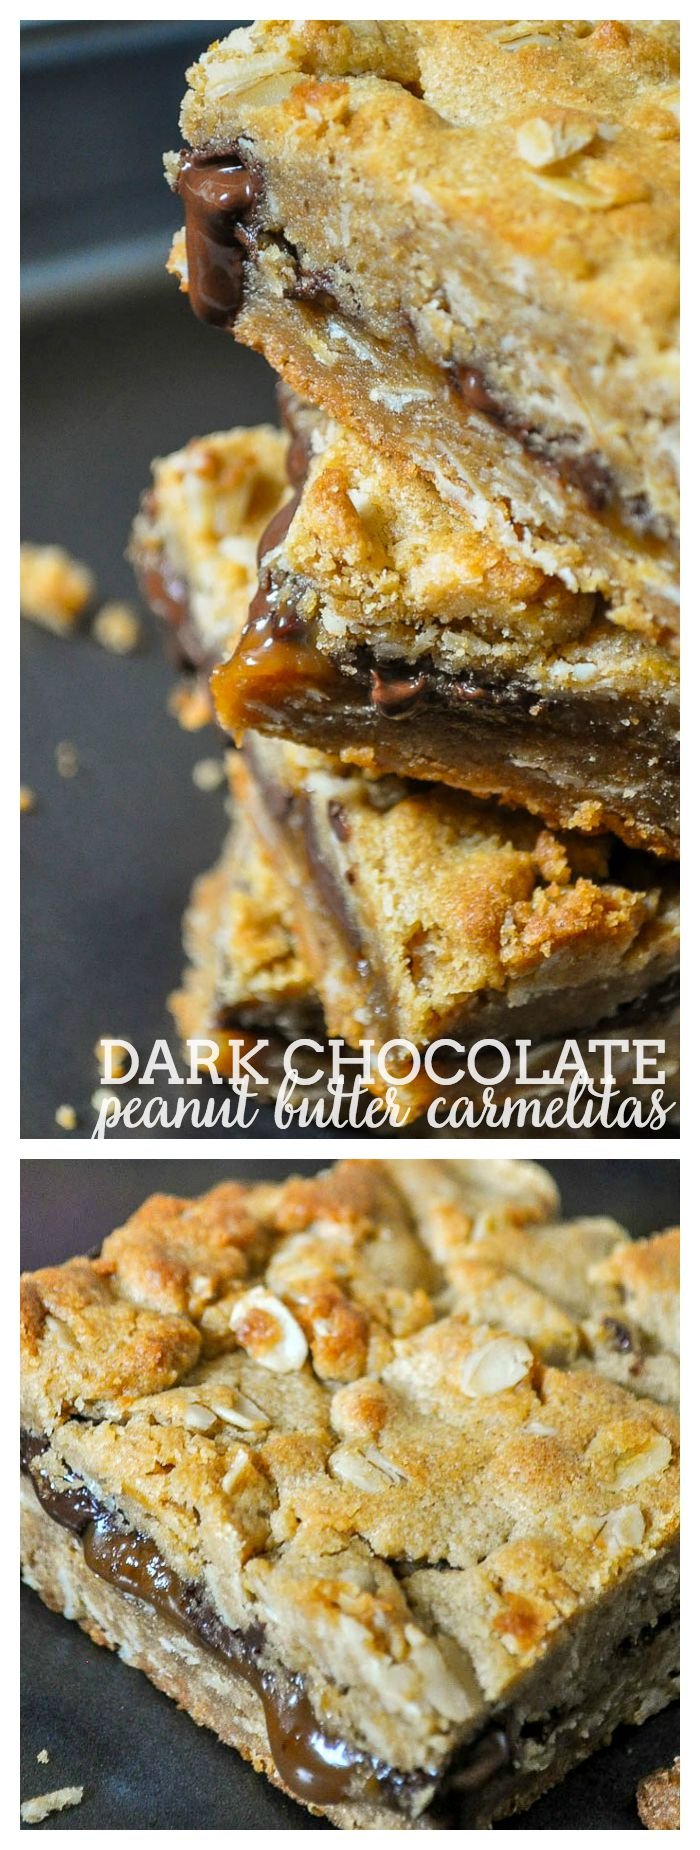 Decadent Dark Chocolate Peanut Butter Carmelitas! So good that you won't want to share a single bite of this dessert bar recipe! | The Love Nerds